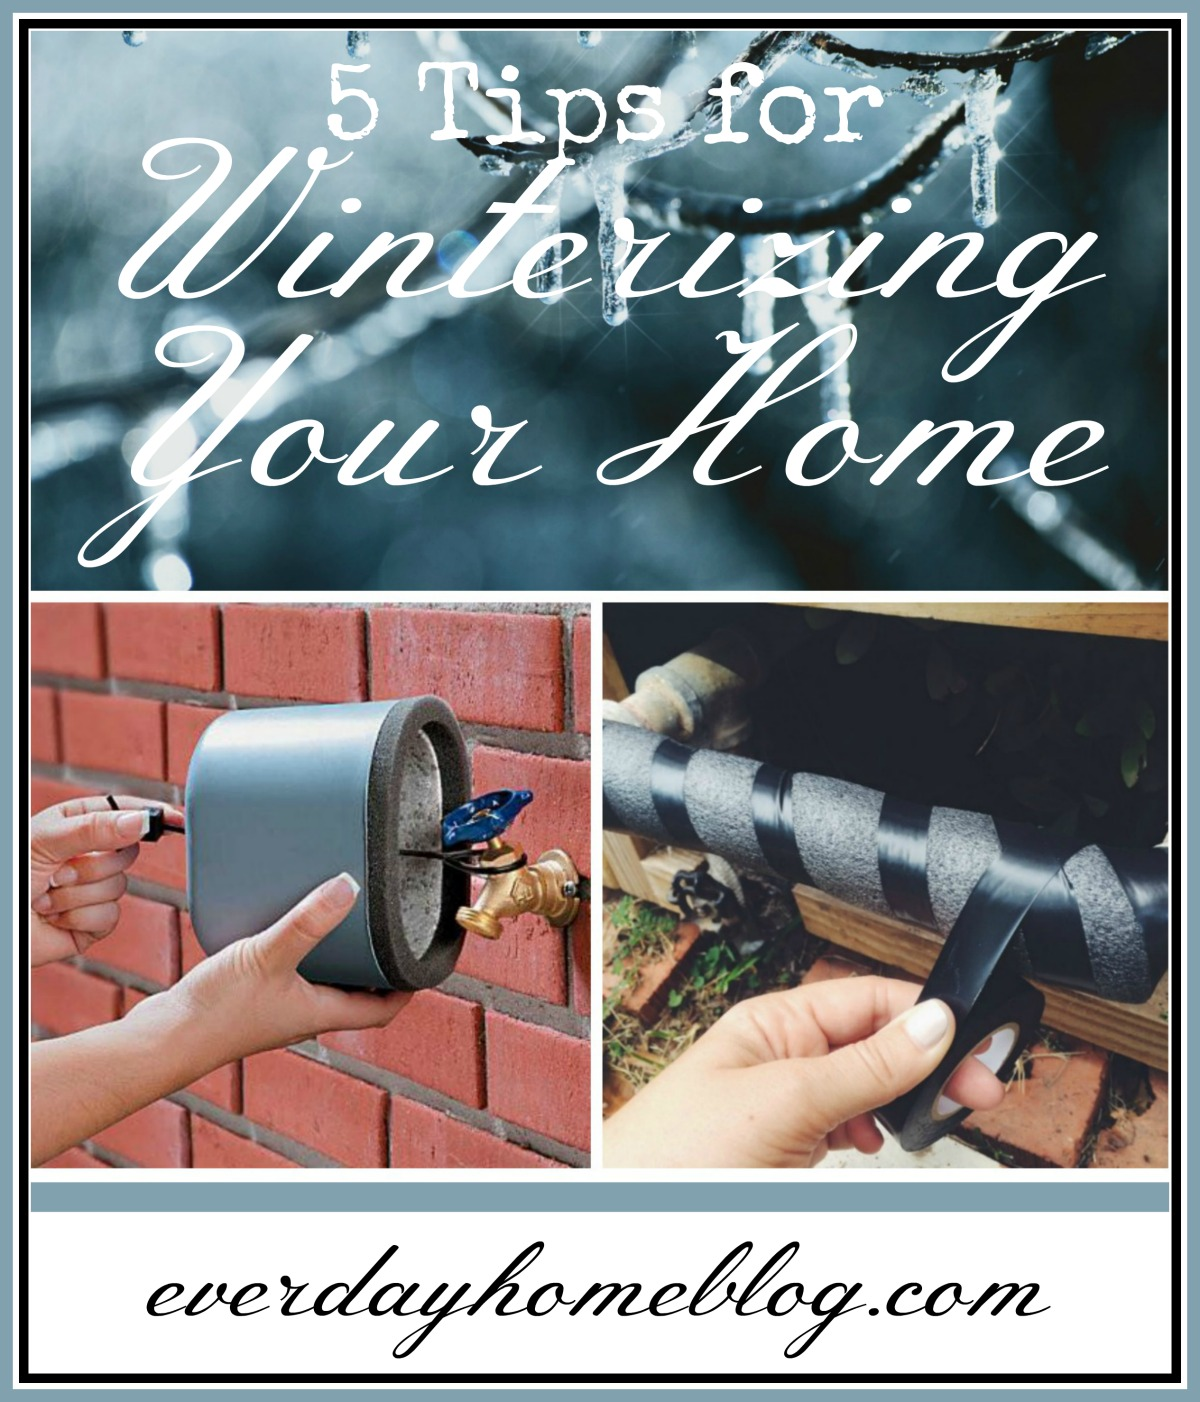 5-tips-to-help-winterize-your-home